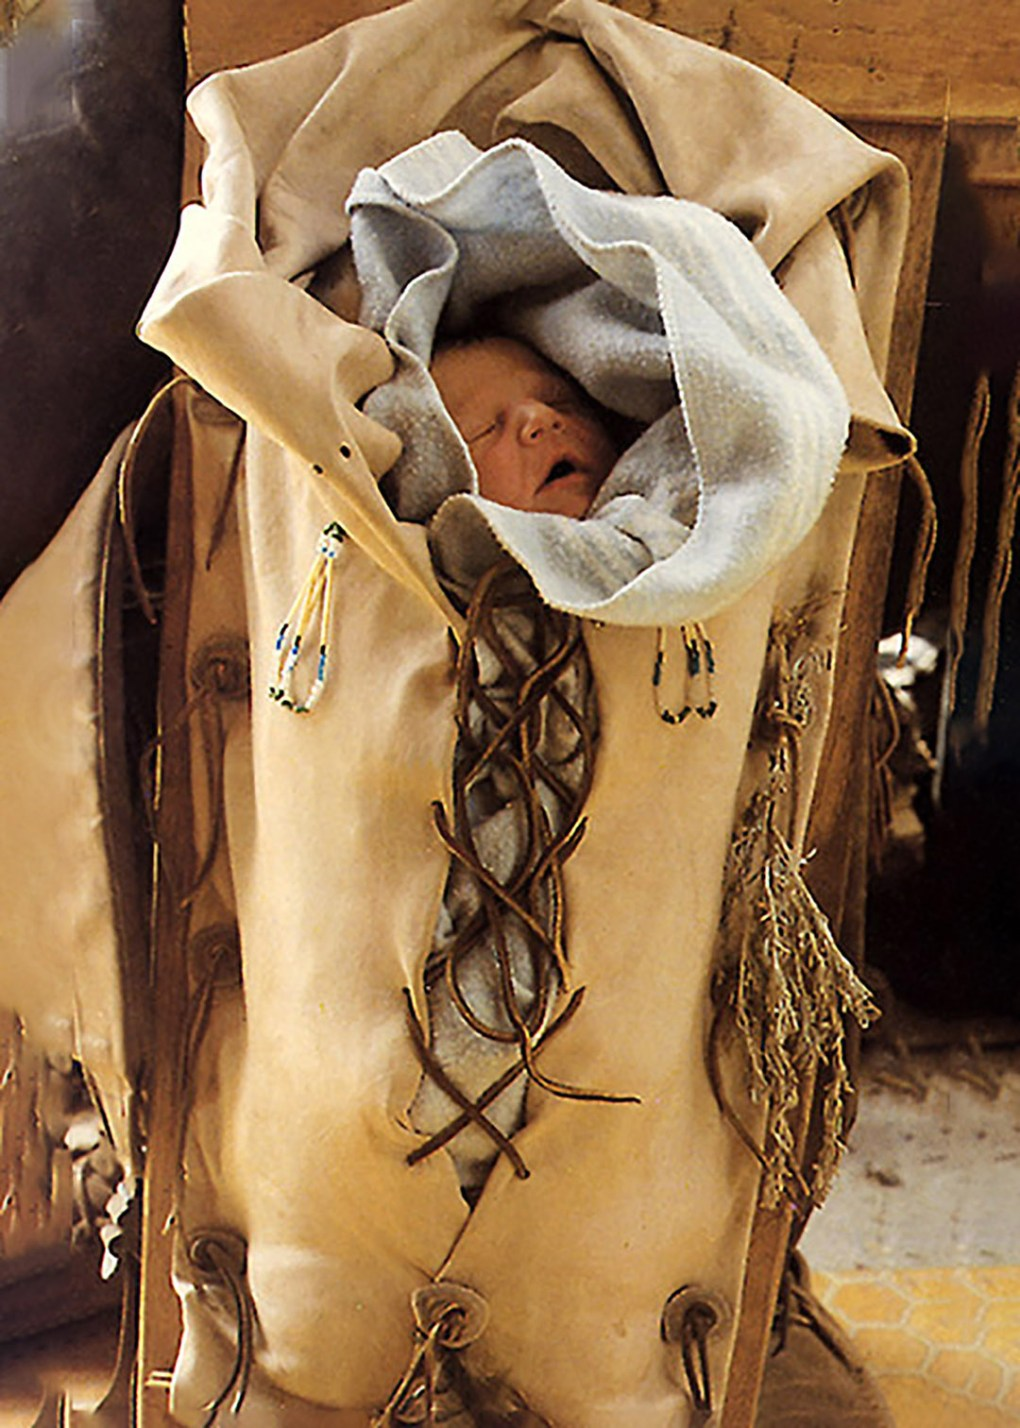 New Life at Taos Pueblo - photograph by Gail Russell